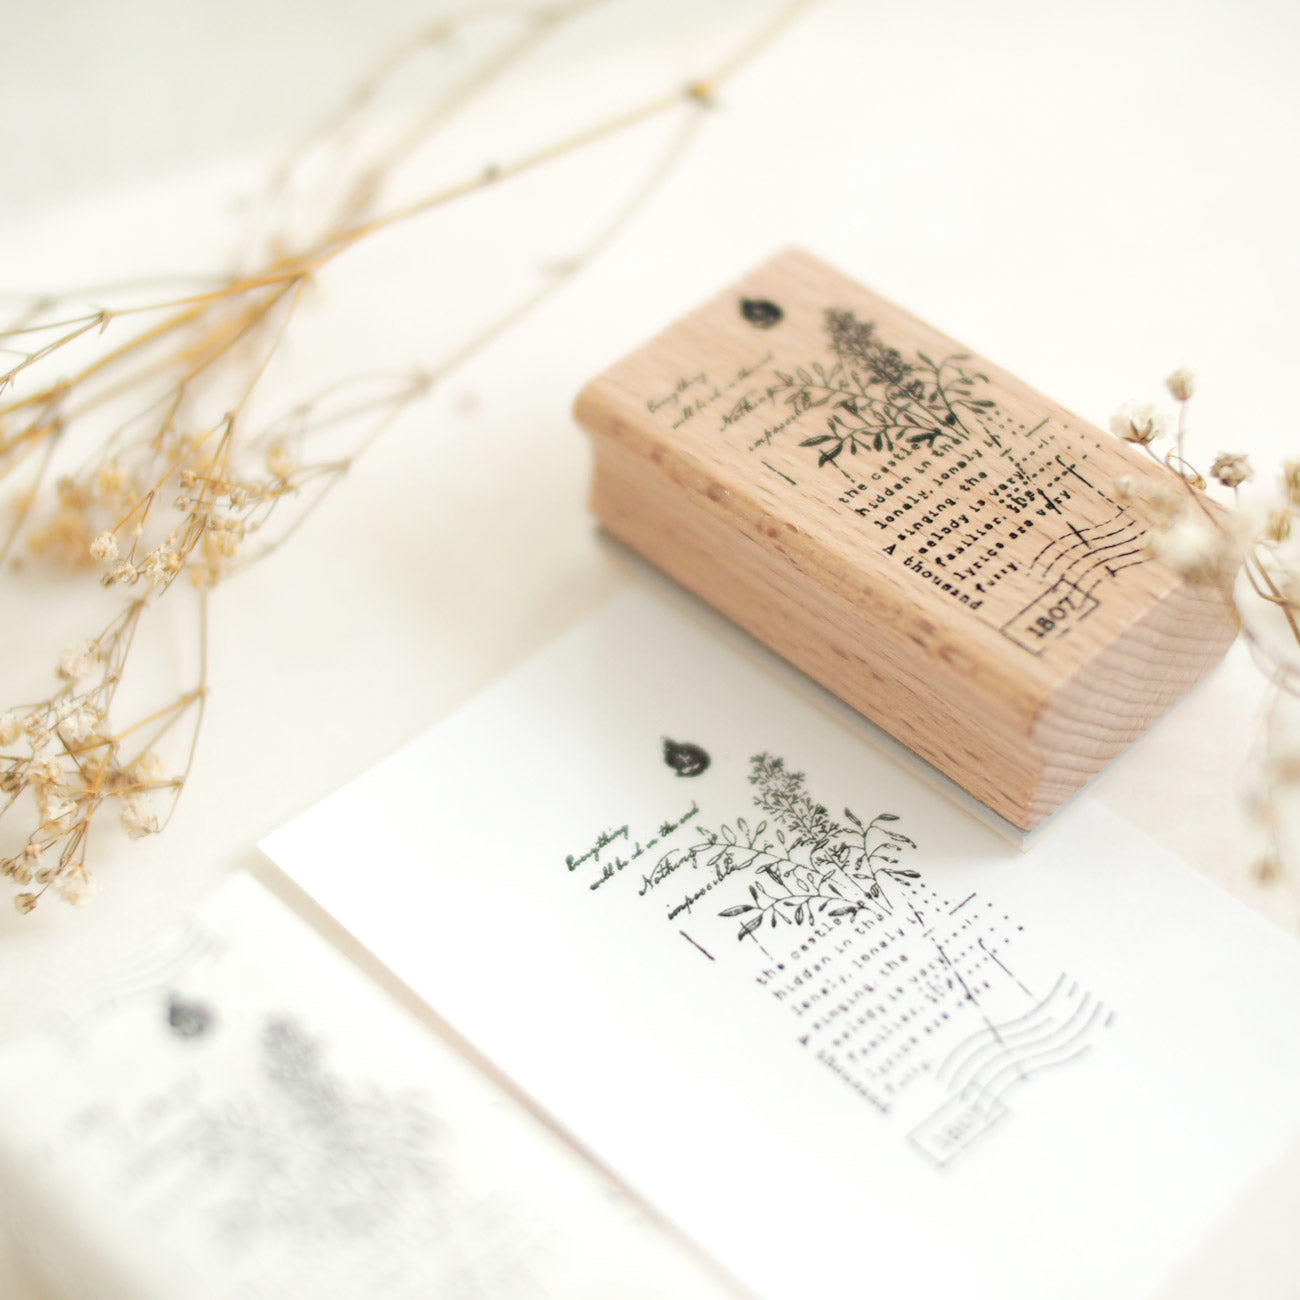 Rustic Vintage Botanical Collage Rubber Stamp: No. 13